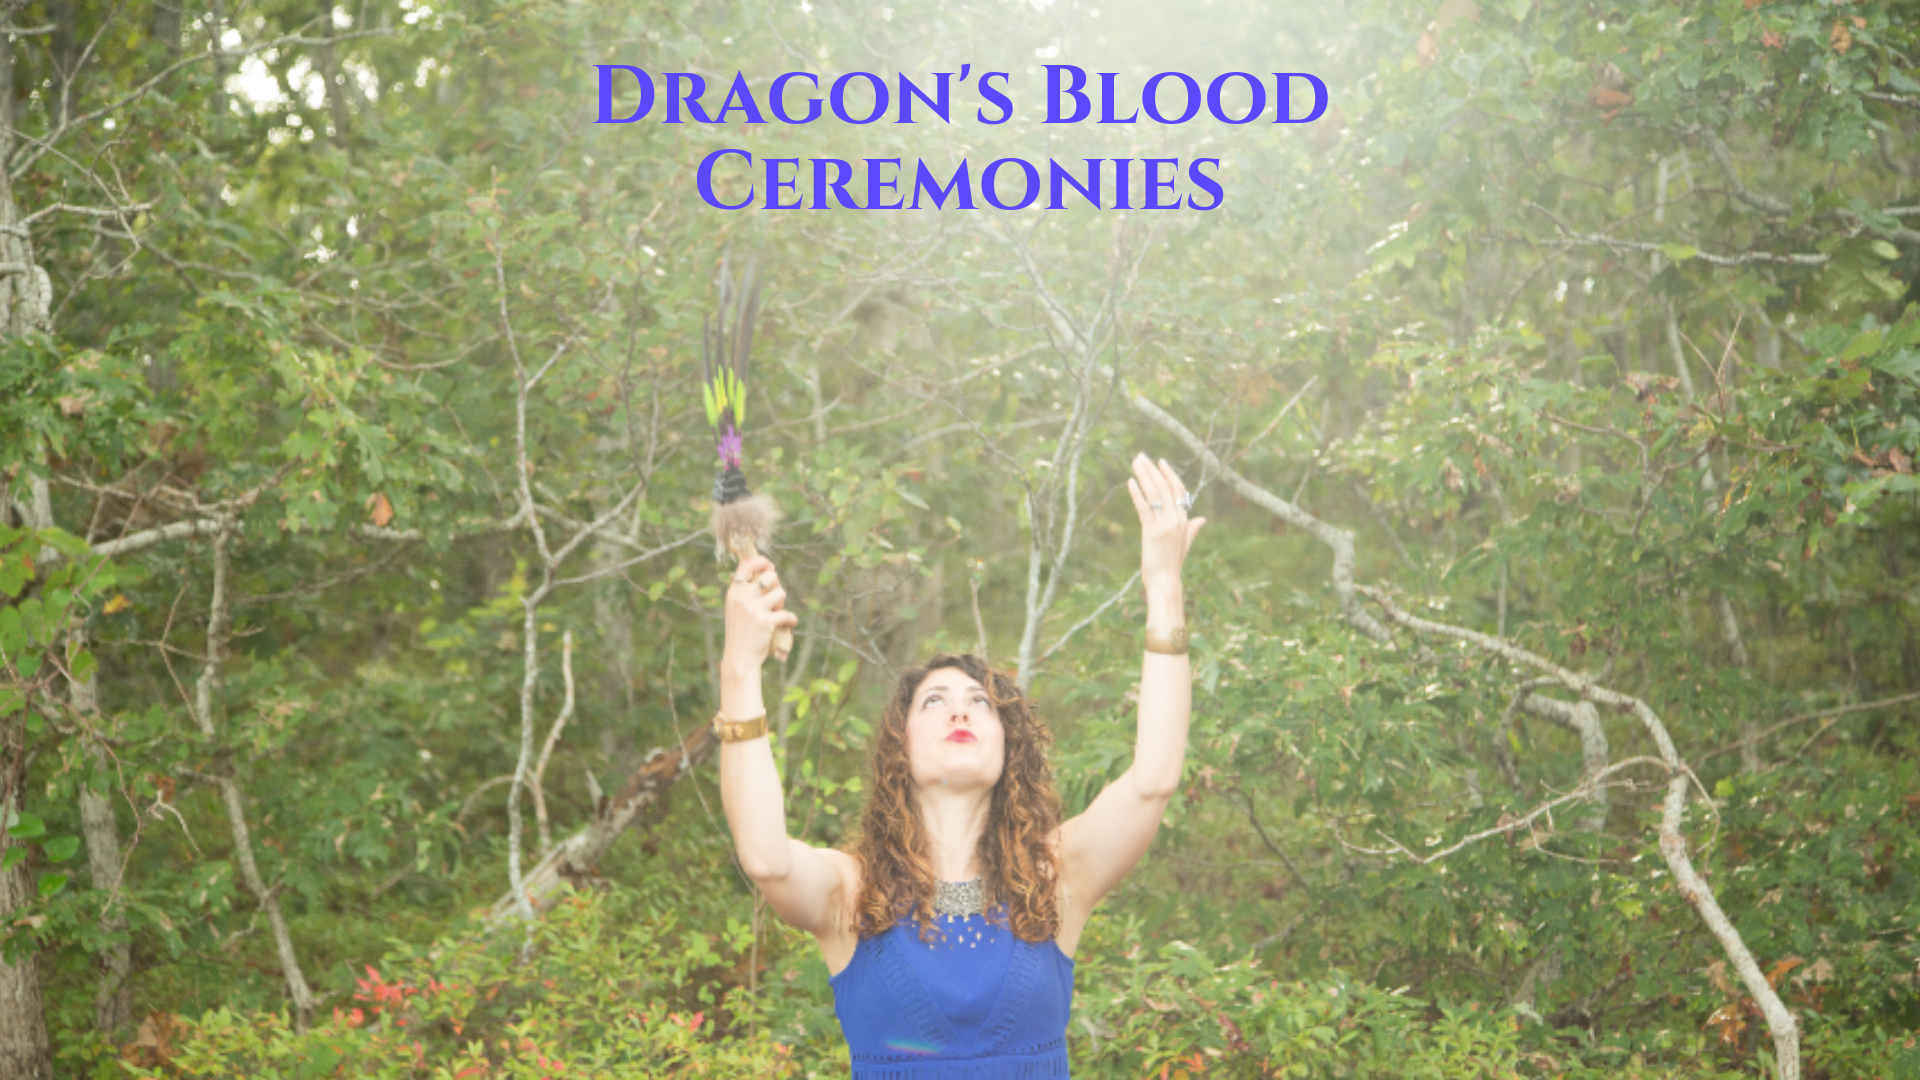 - Check Out my Dragon's Blood Ceremonies:- Private Sessions-Couples Sessions-Group Ceremonies